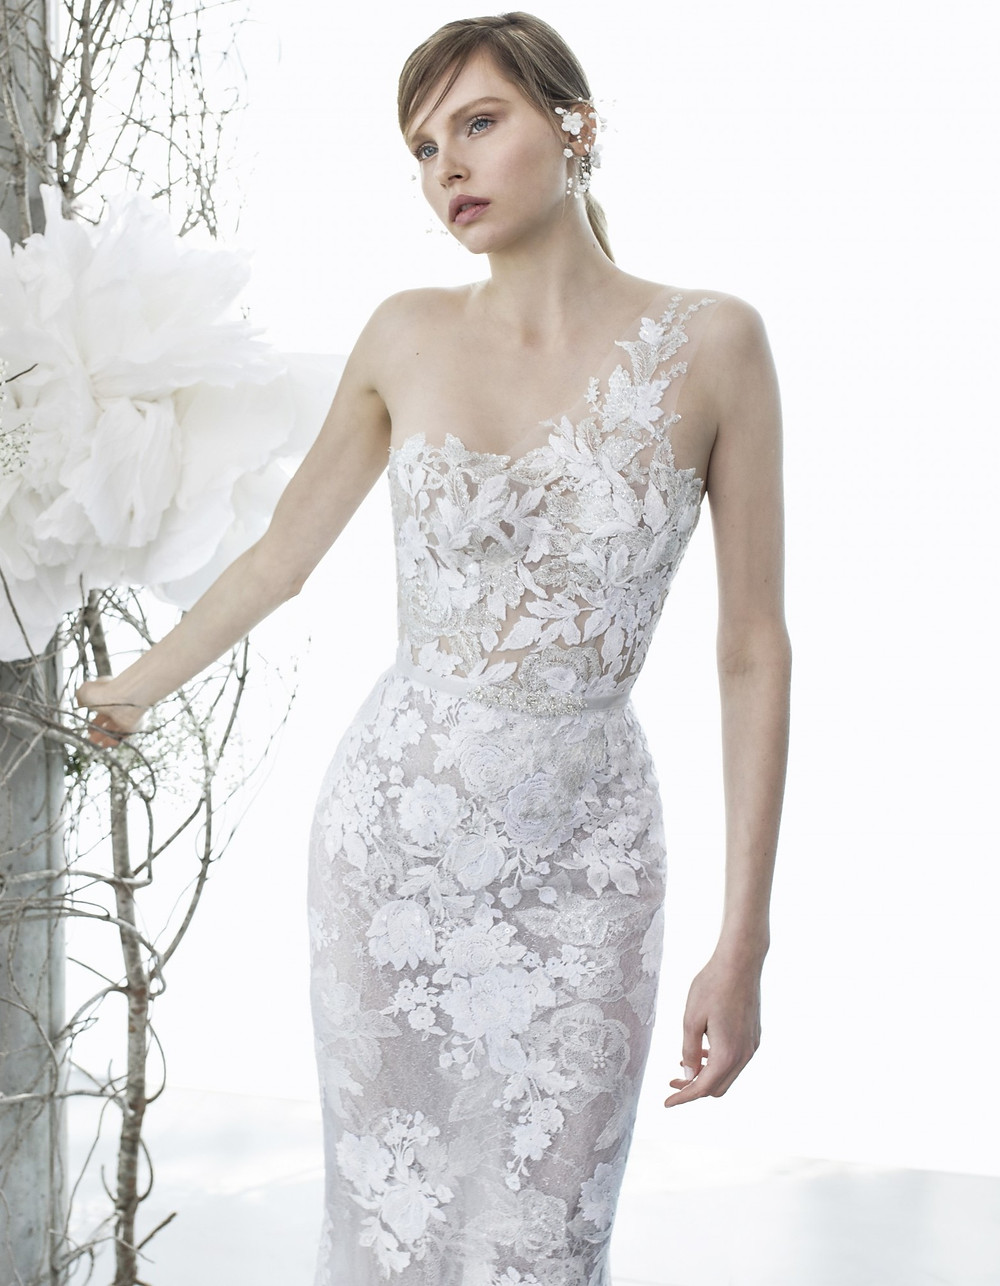 A one shoulder, sheath wedding dress with flowers and floral embellishments